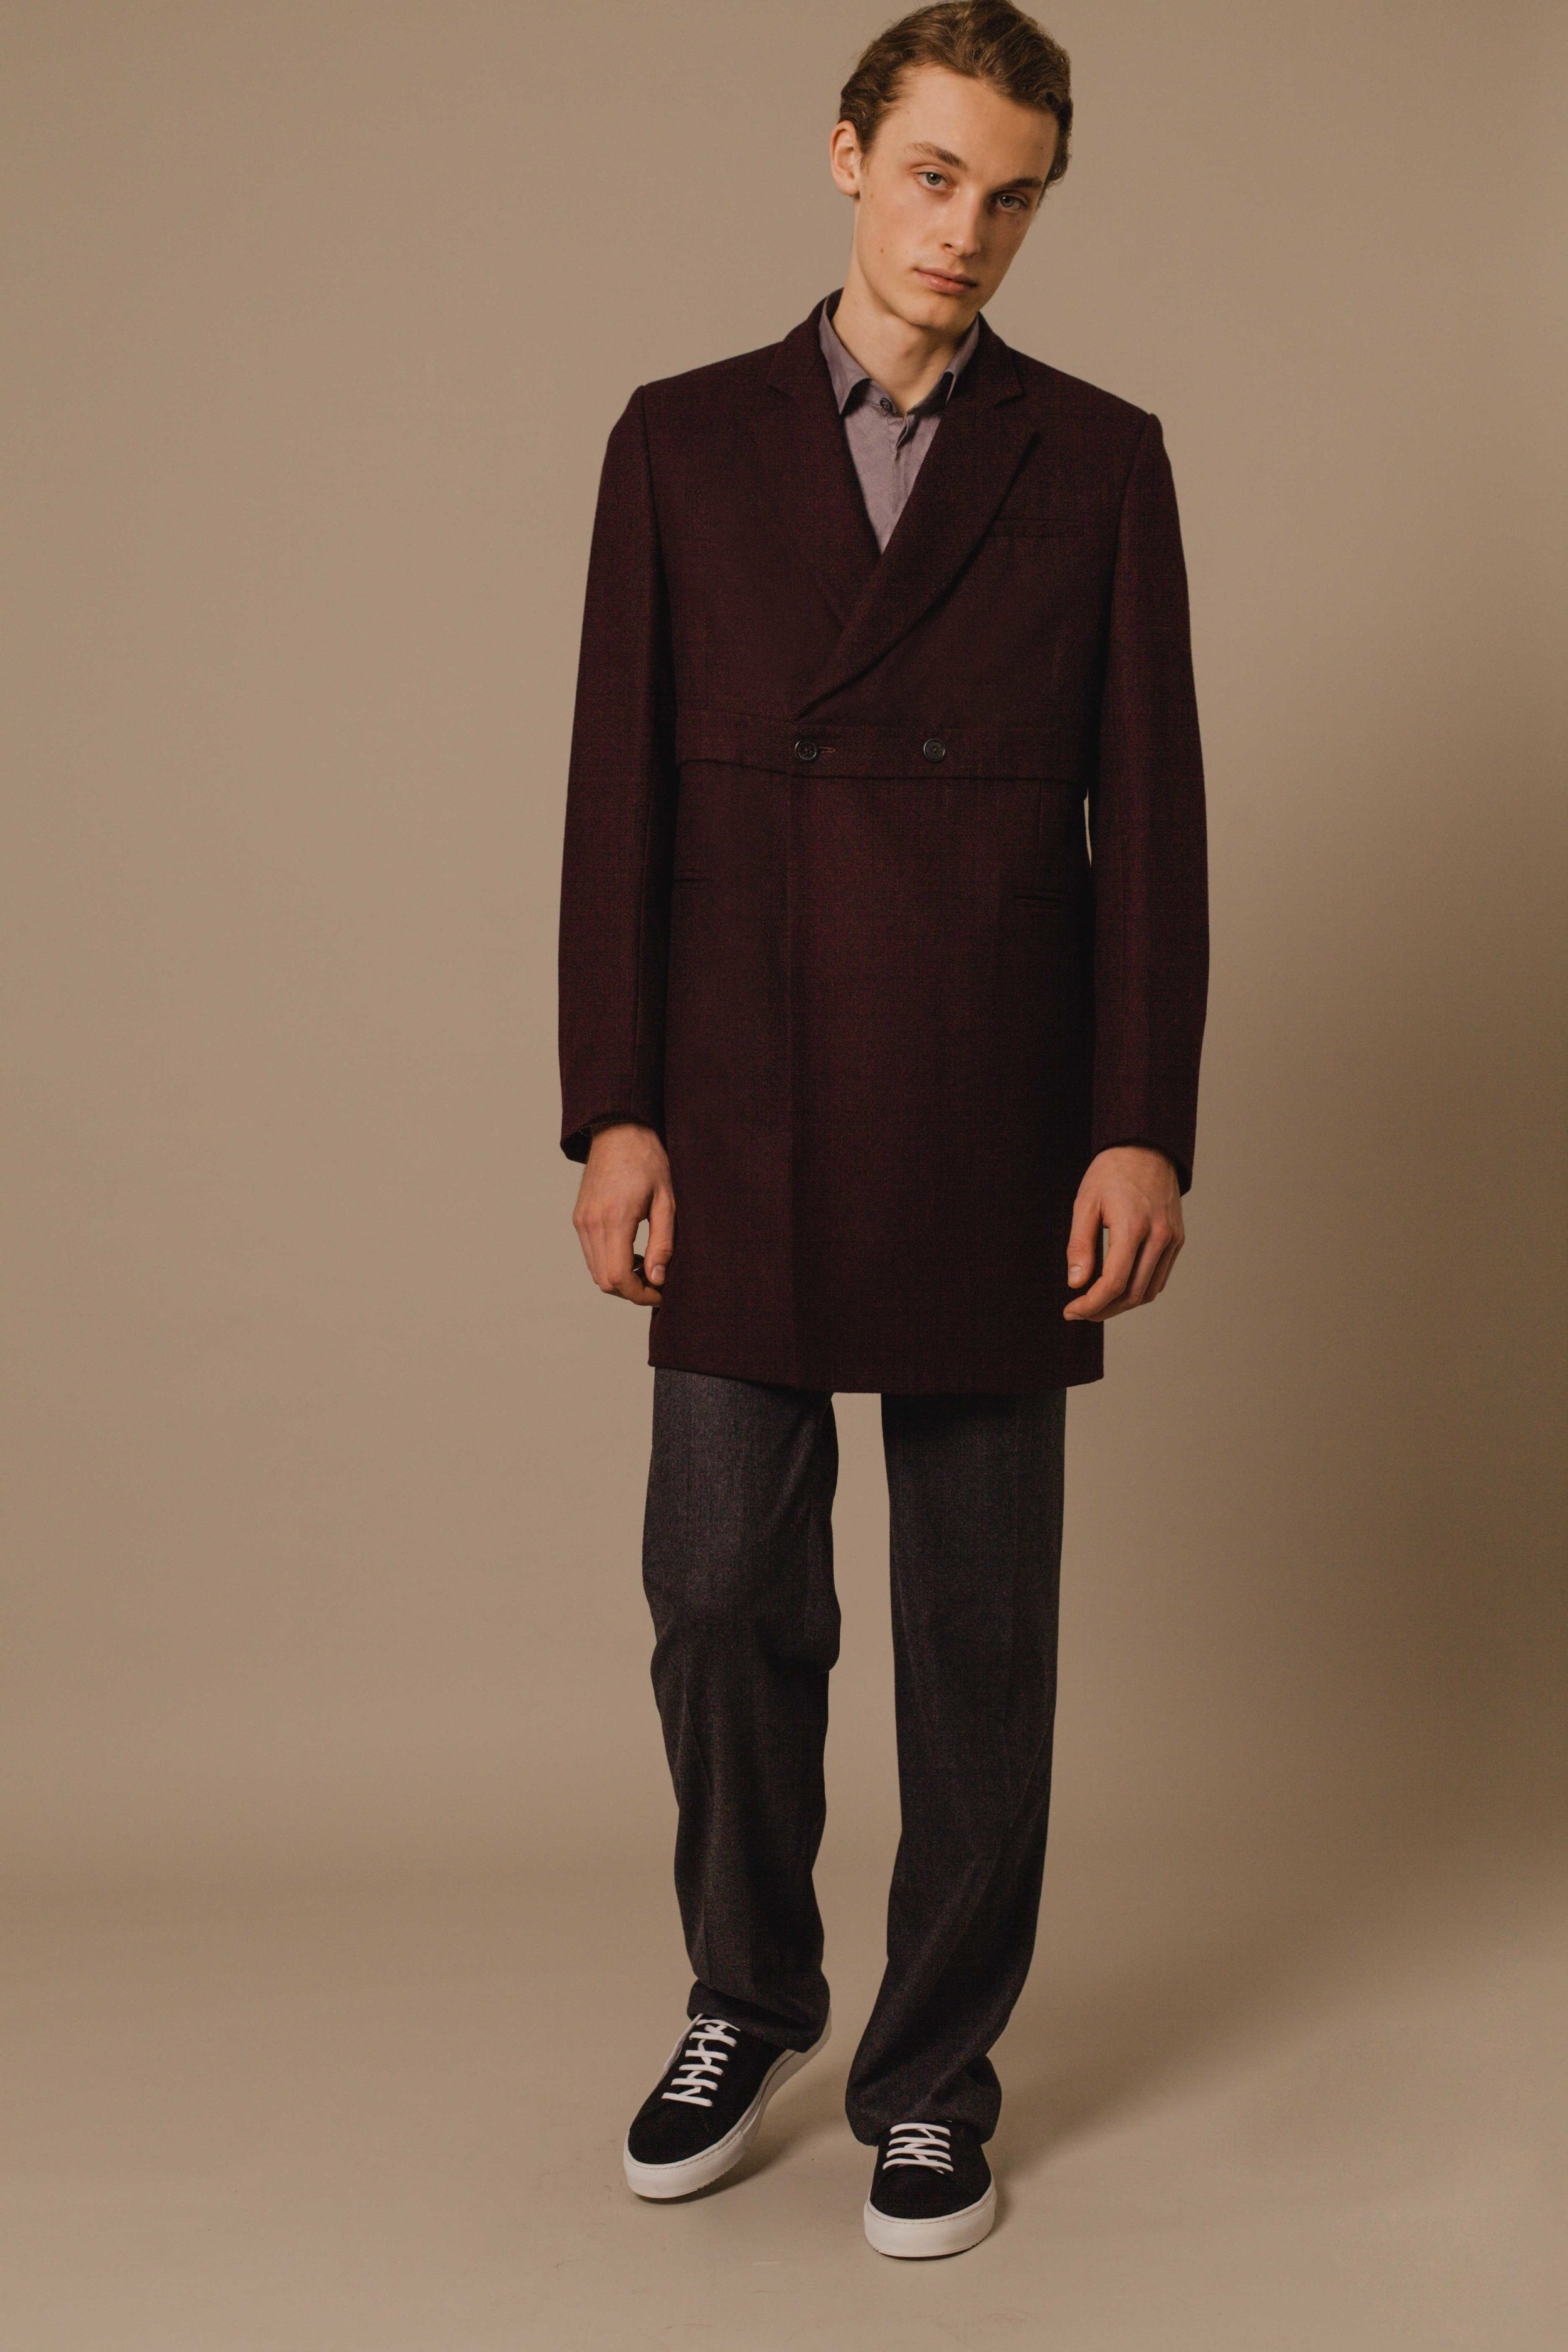 Trench coat burgundy Austrian Leichtfried wool High waist trousers charcoal Hand made in London  Classic shirt grey Made in Italy